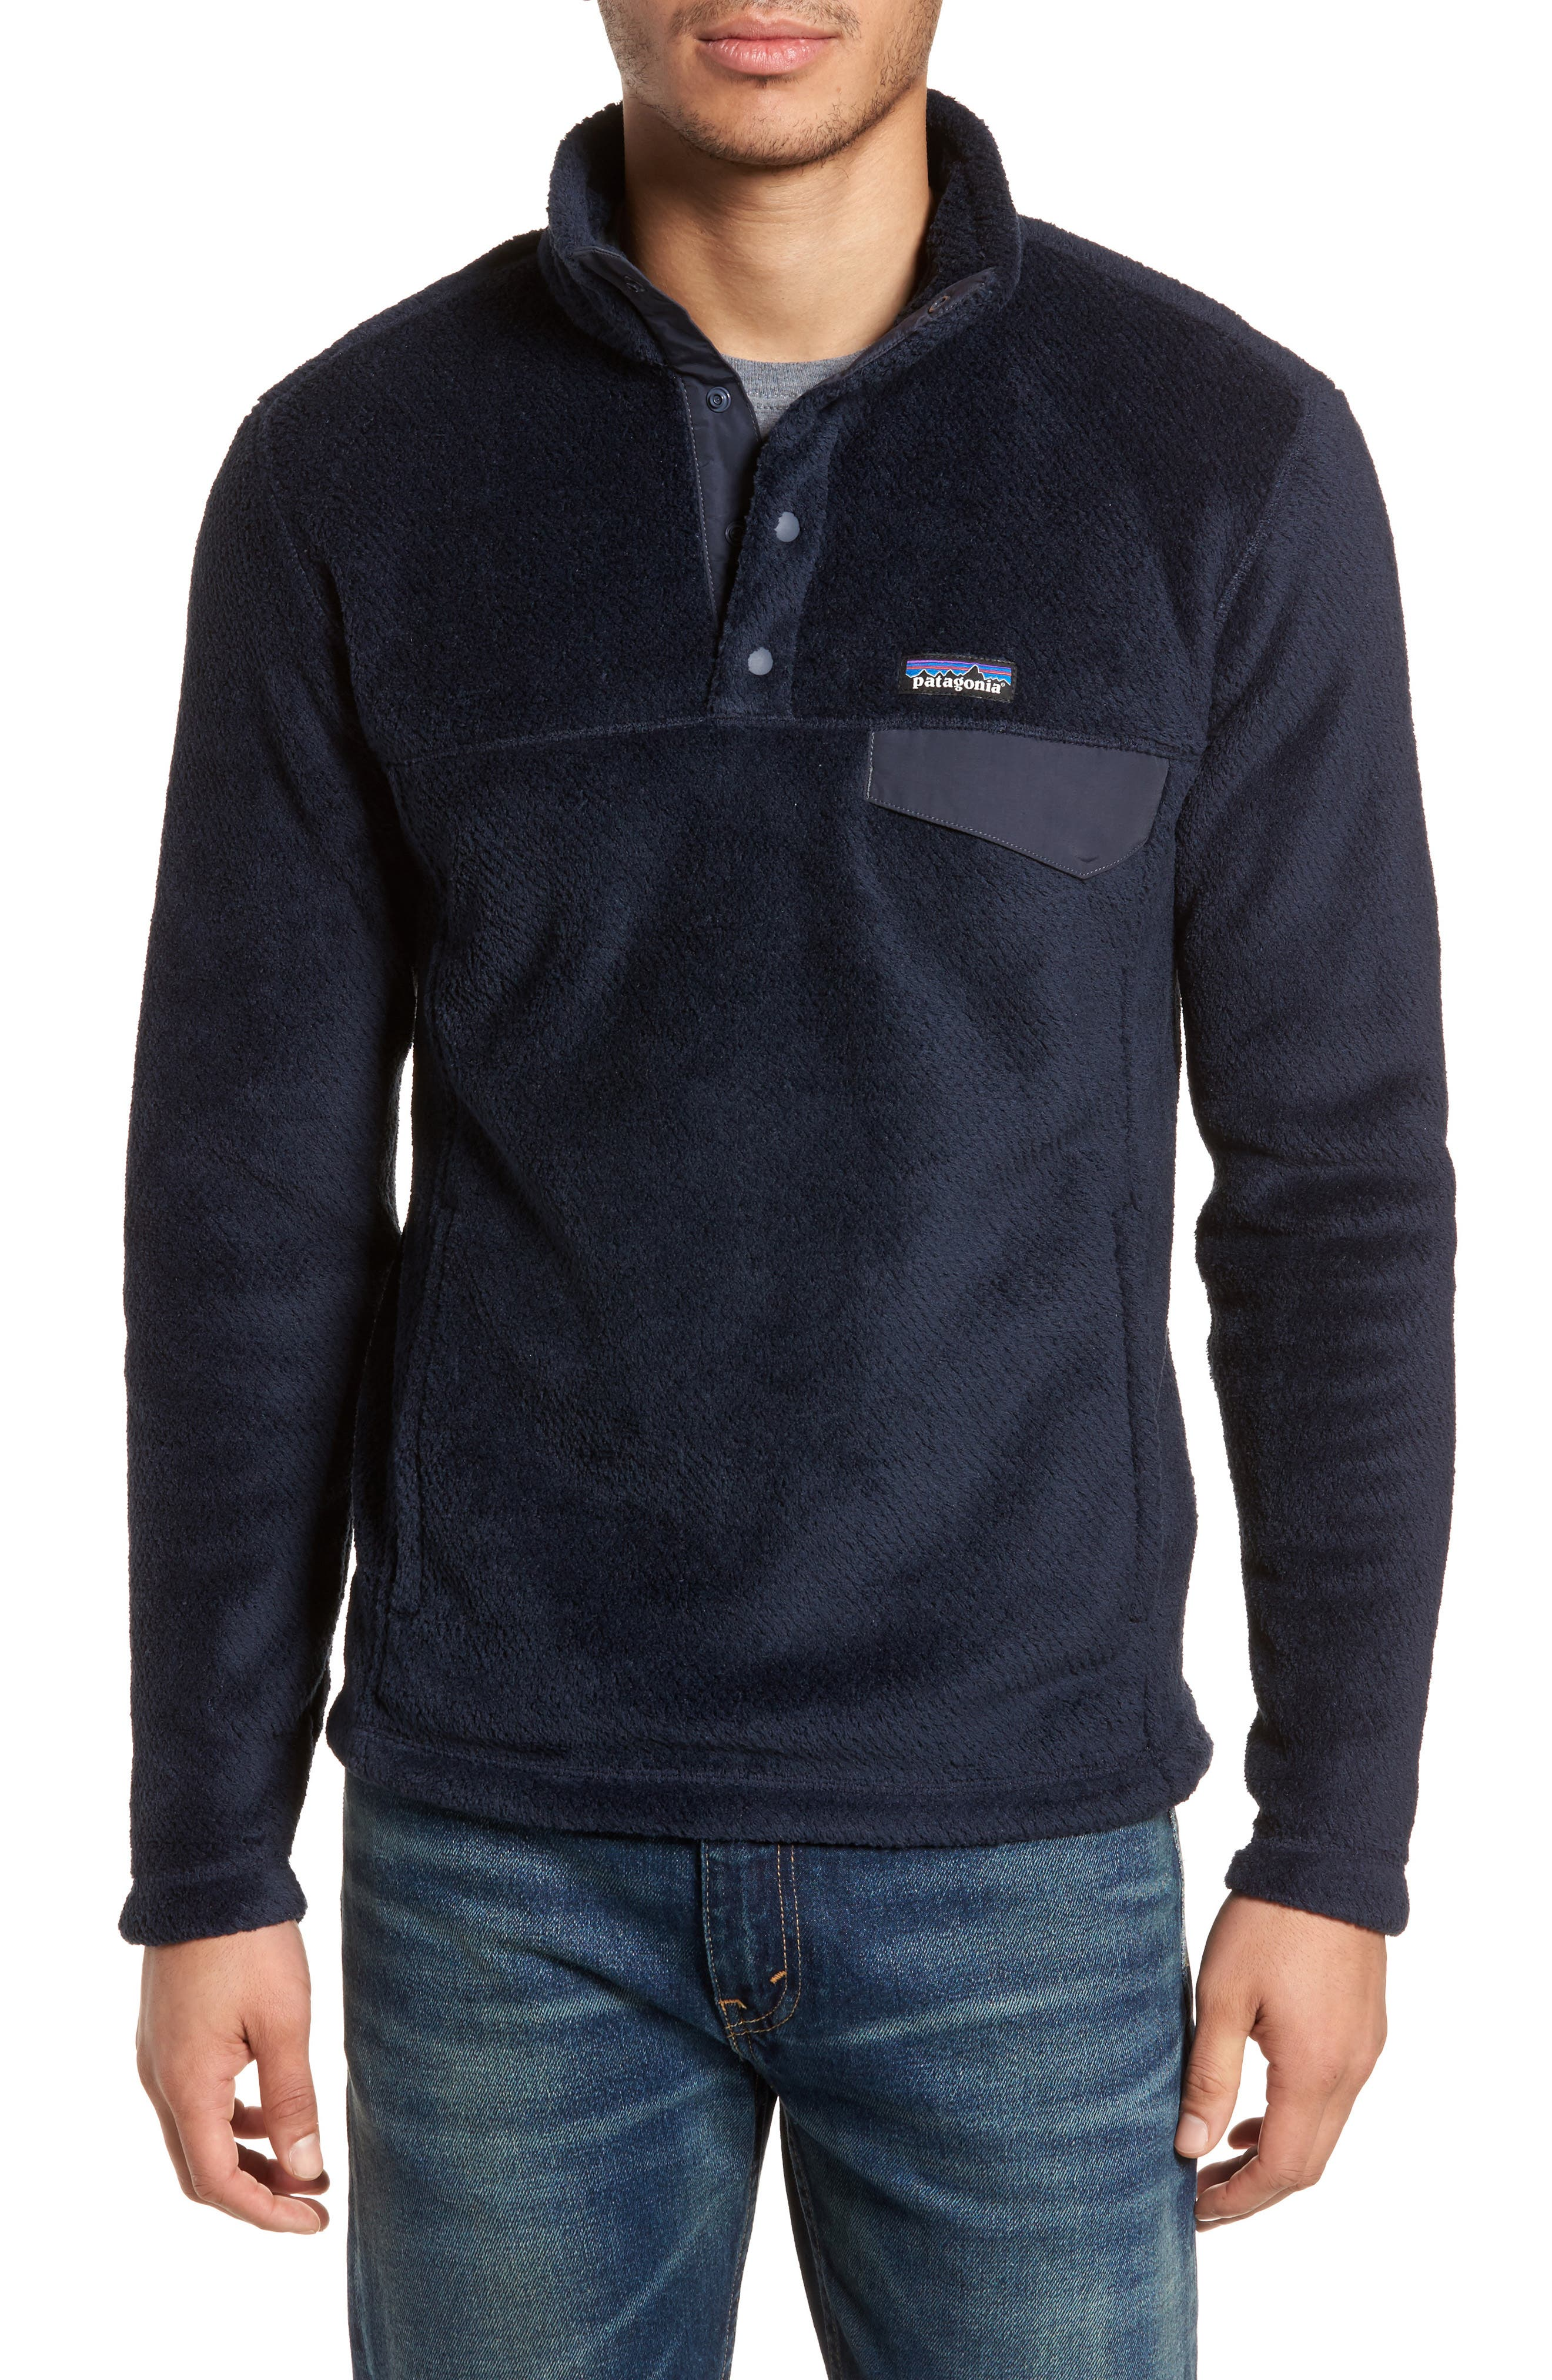 Re-Tool Snap-T<sup>®</sup> Pullover,                         Main,                         color, Navy Blue X-Dye